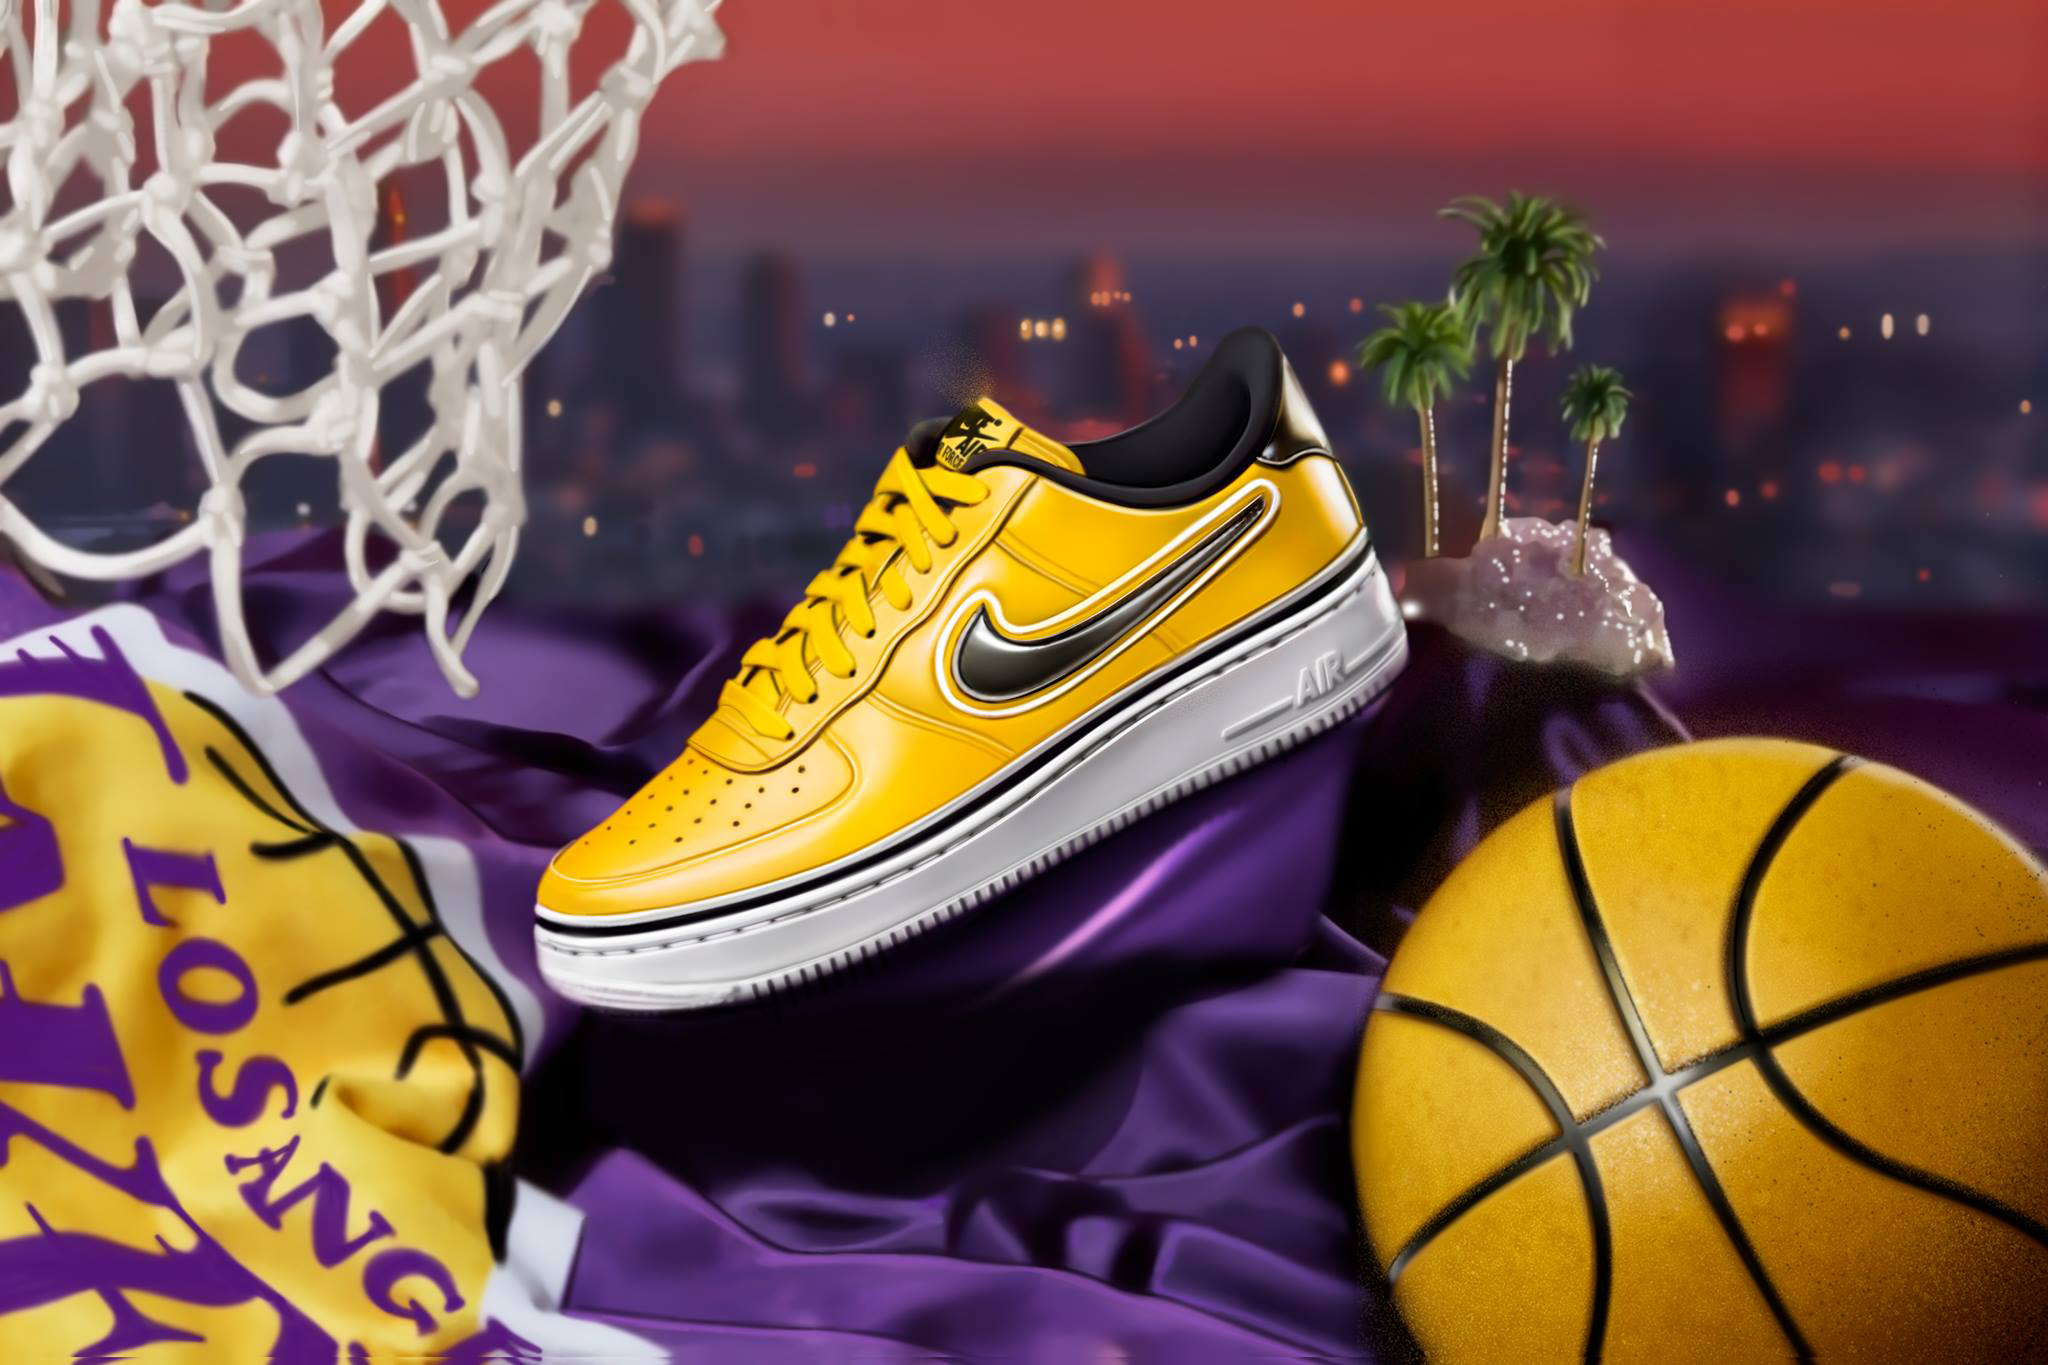 Nike Shoes Nba Where Force 1 To Air Buy l1JcT3uFK